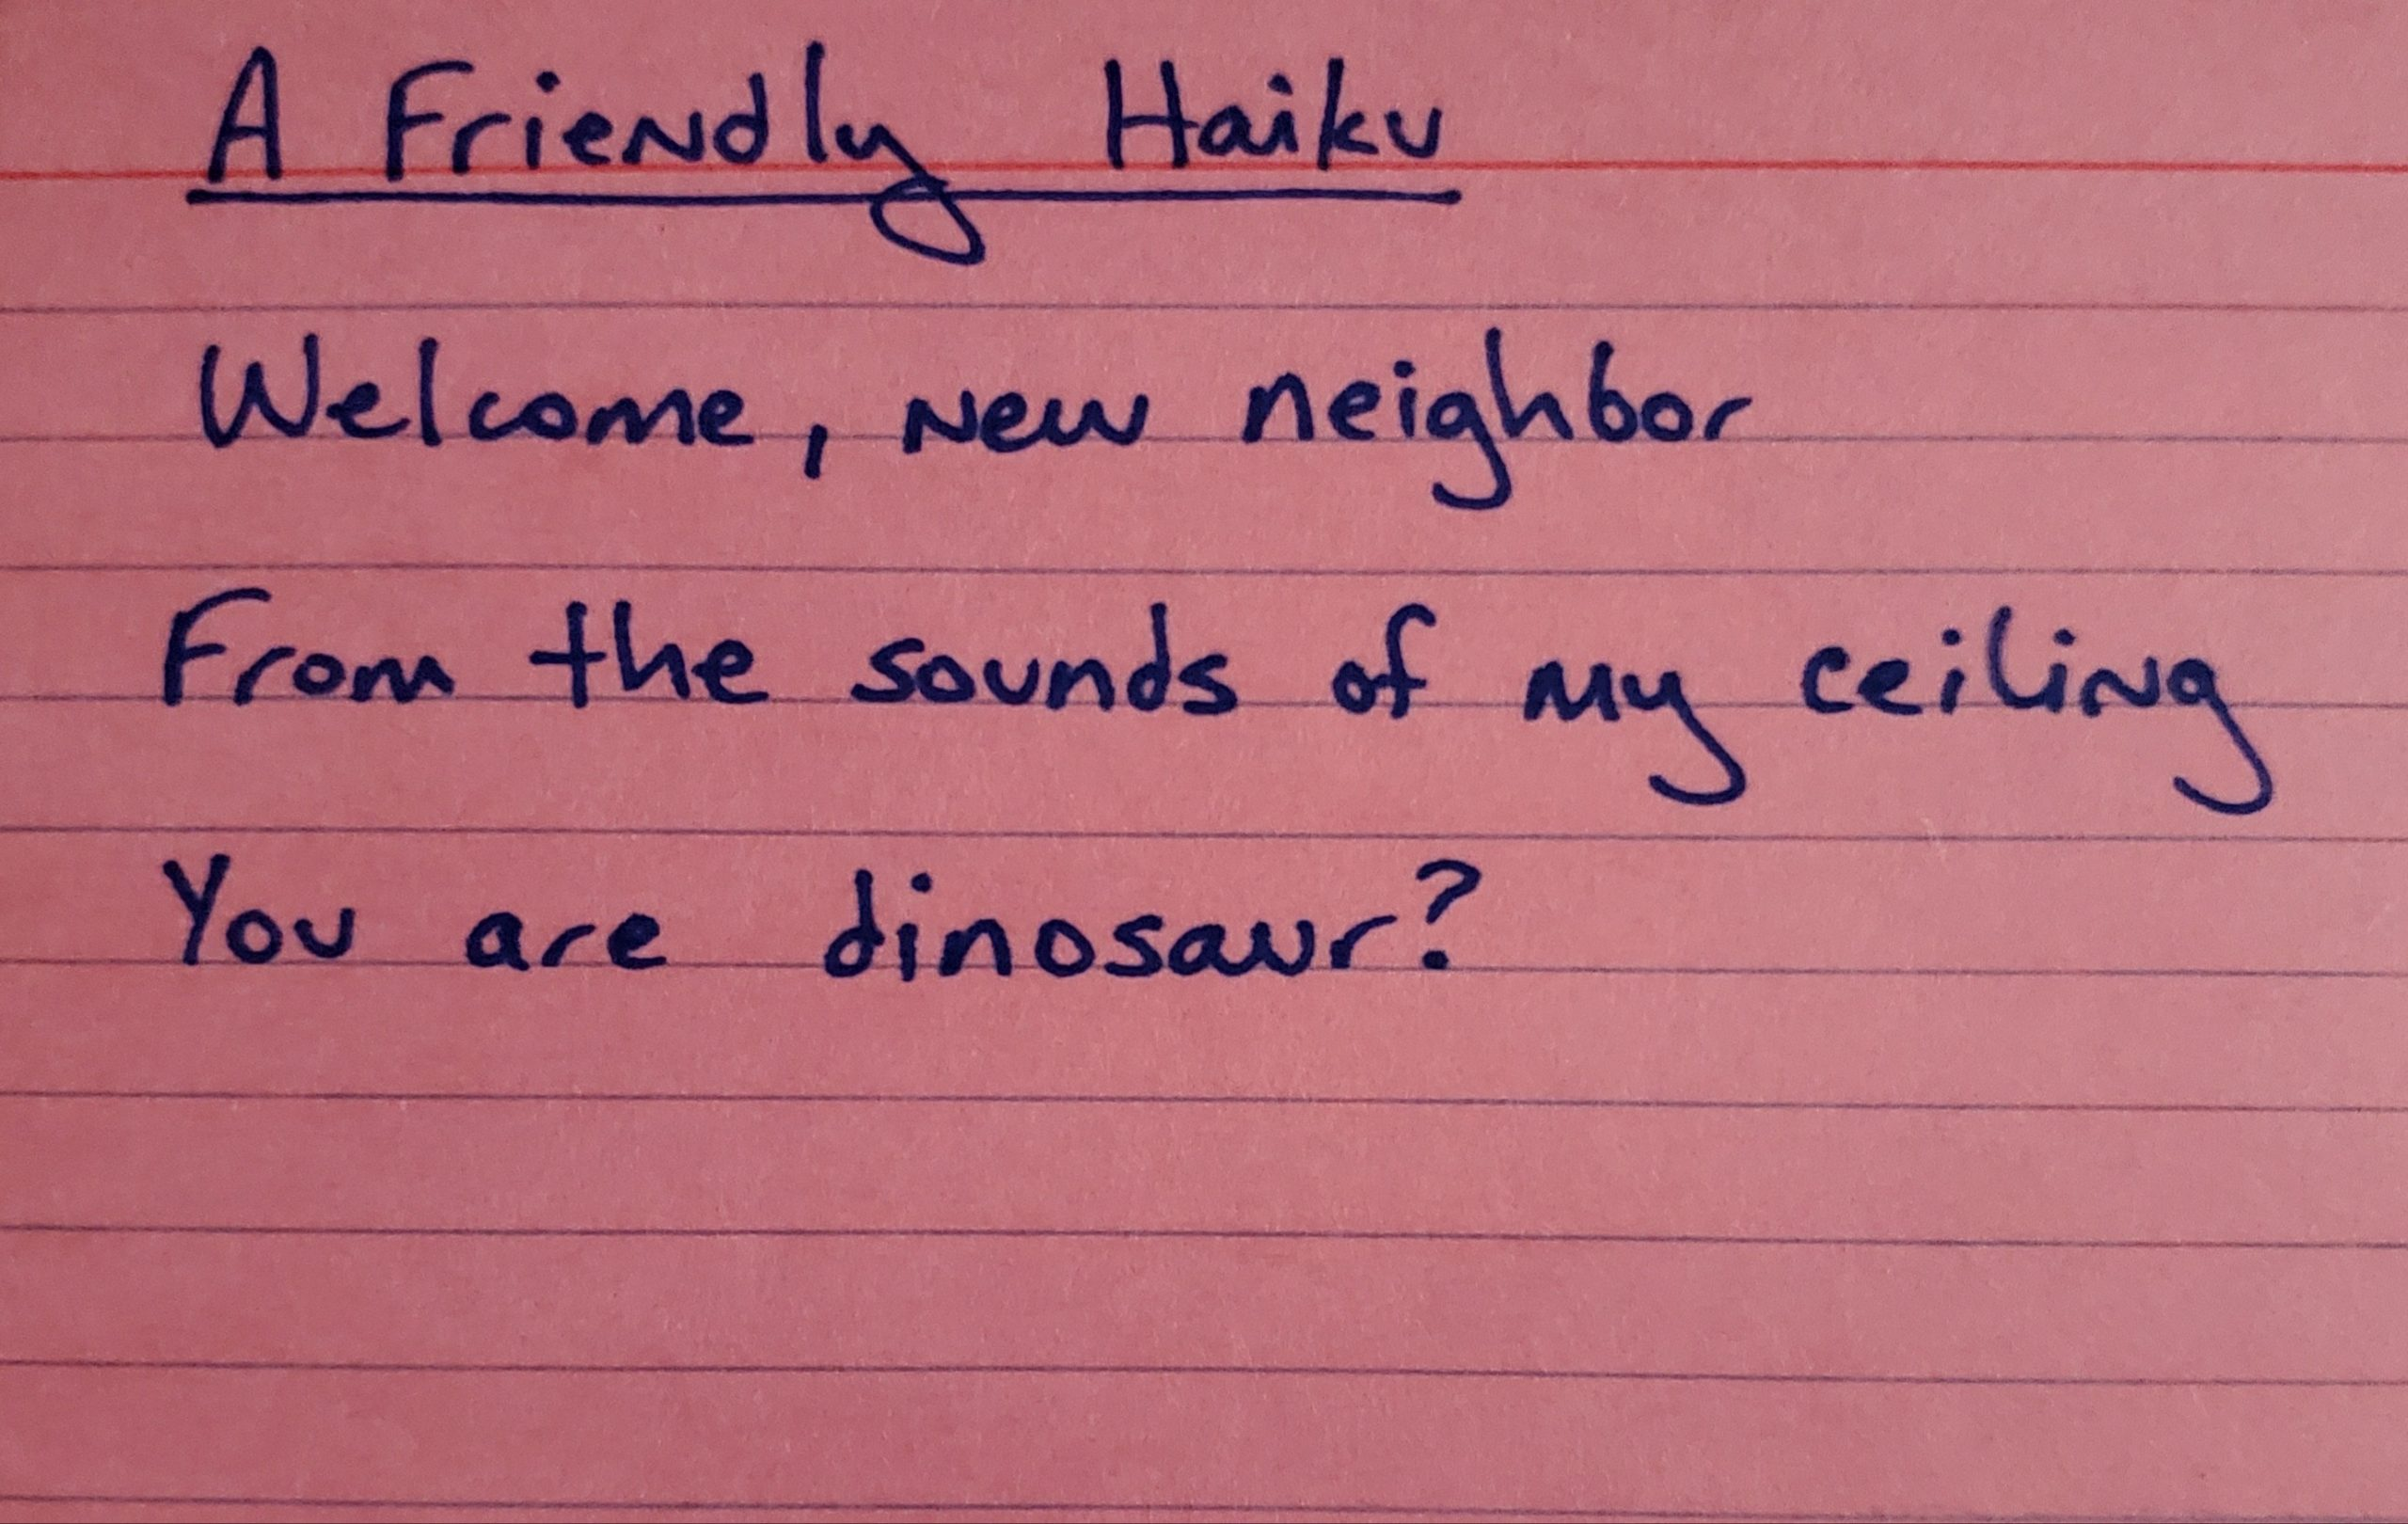 Friendly Haiku left by neighbor regarding private noise nuisance